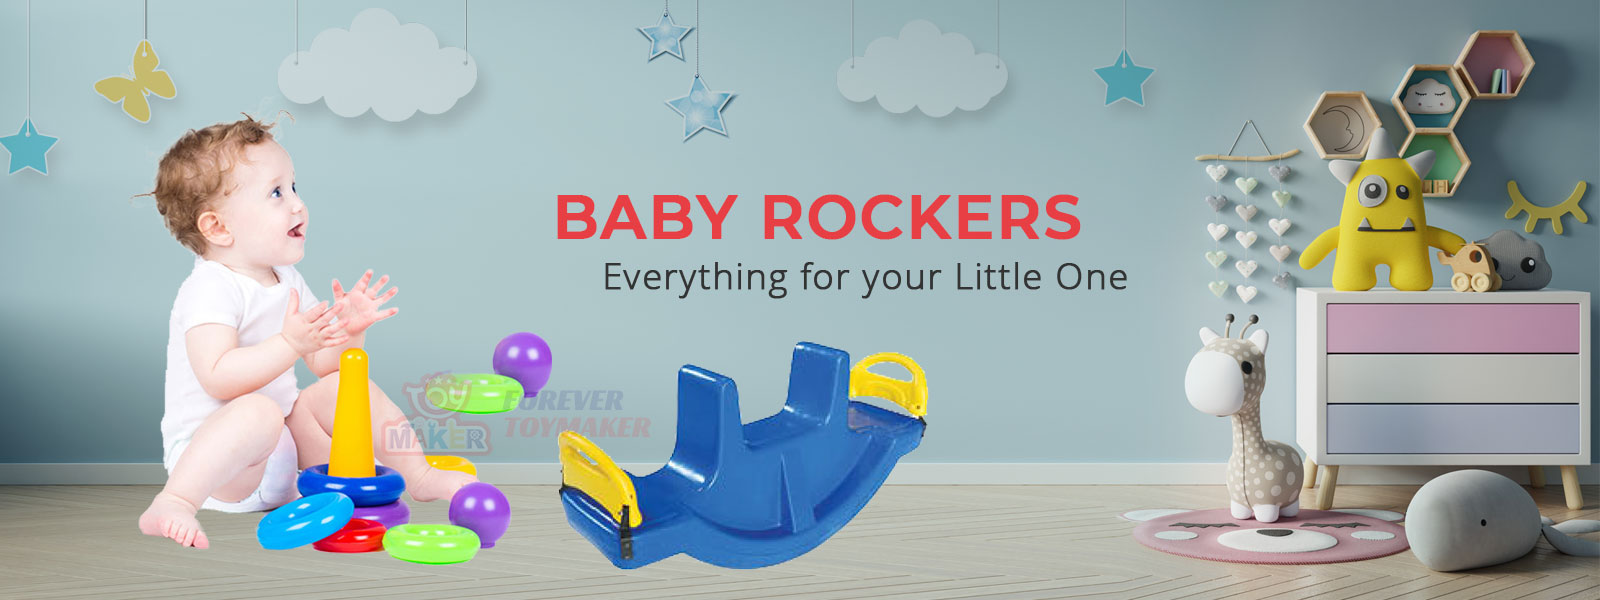 Baby Rockers Manufacturers in Jammu